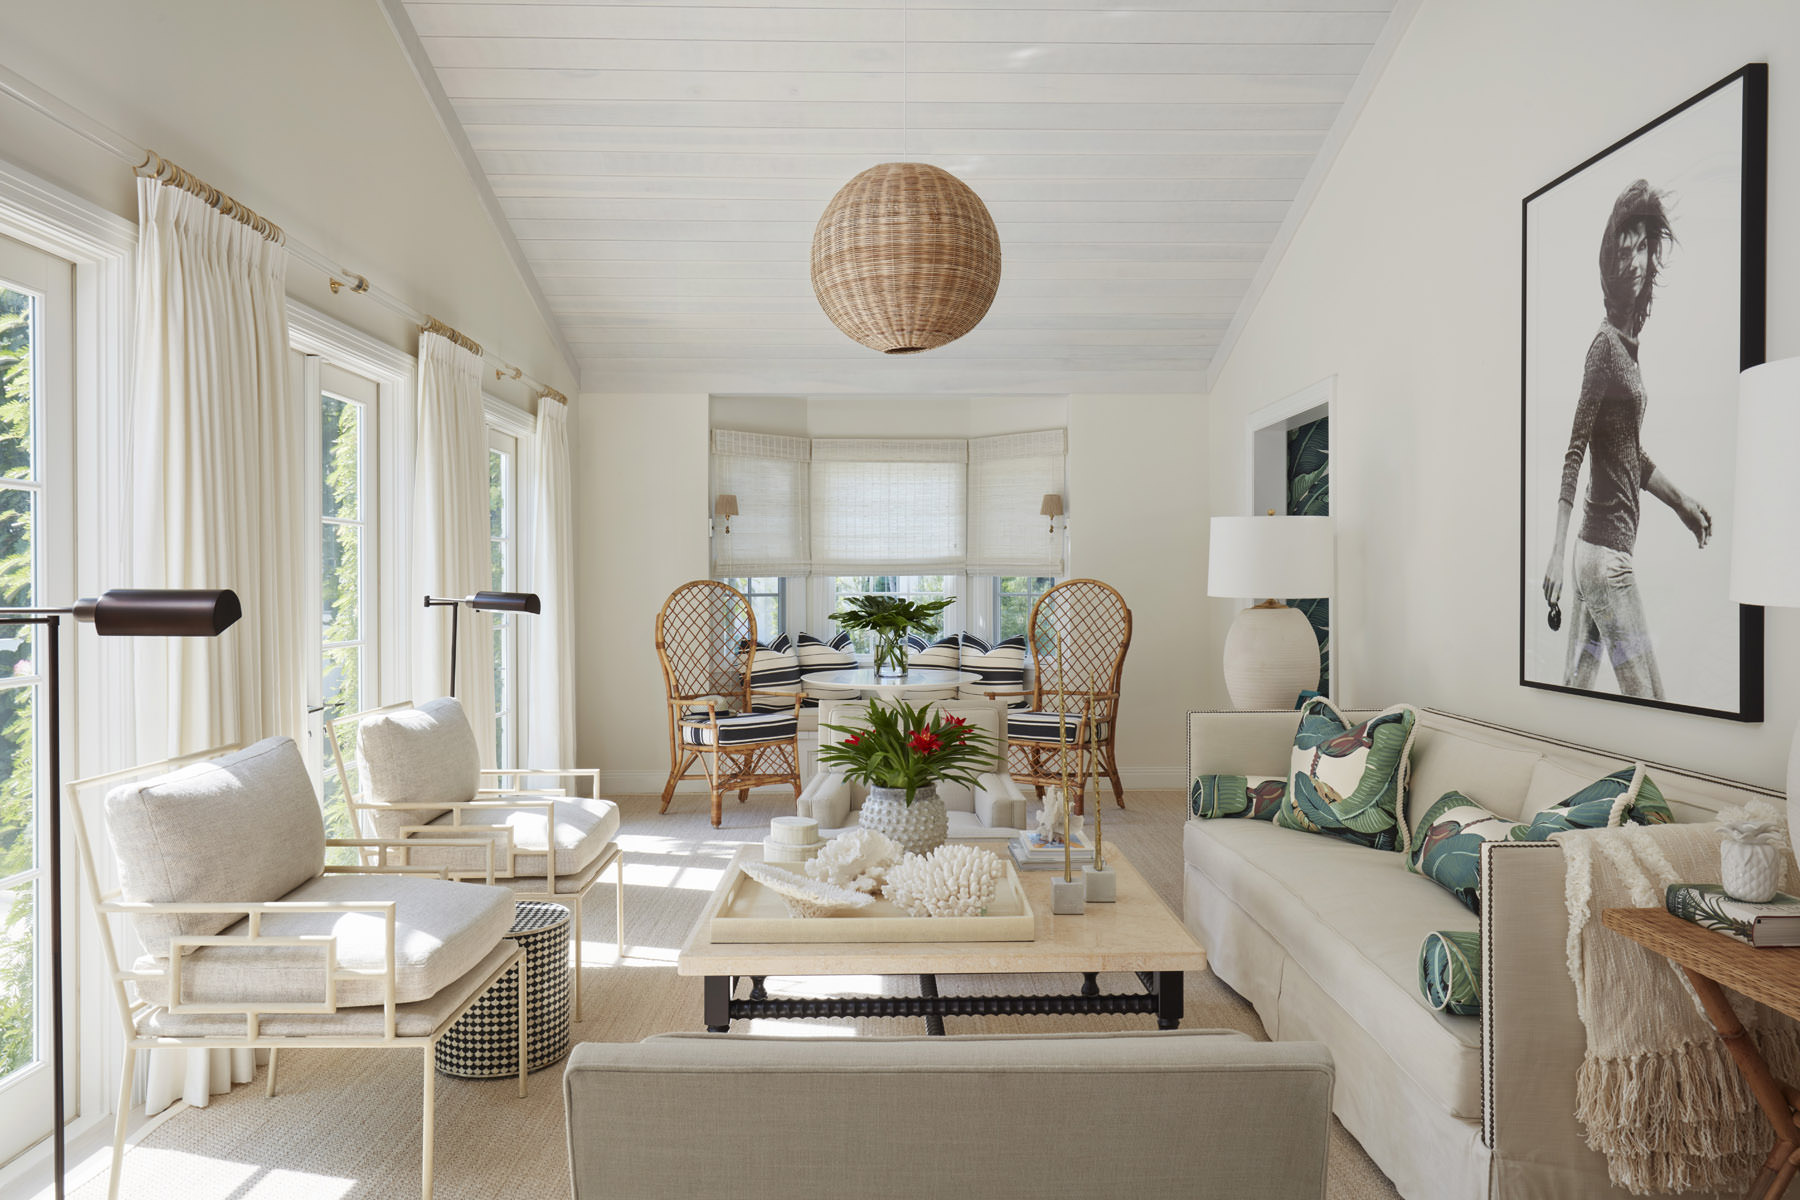 A palm beach home by lindsey lane katie considers for Interior designers palm beach